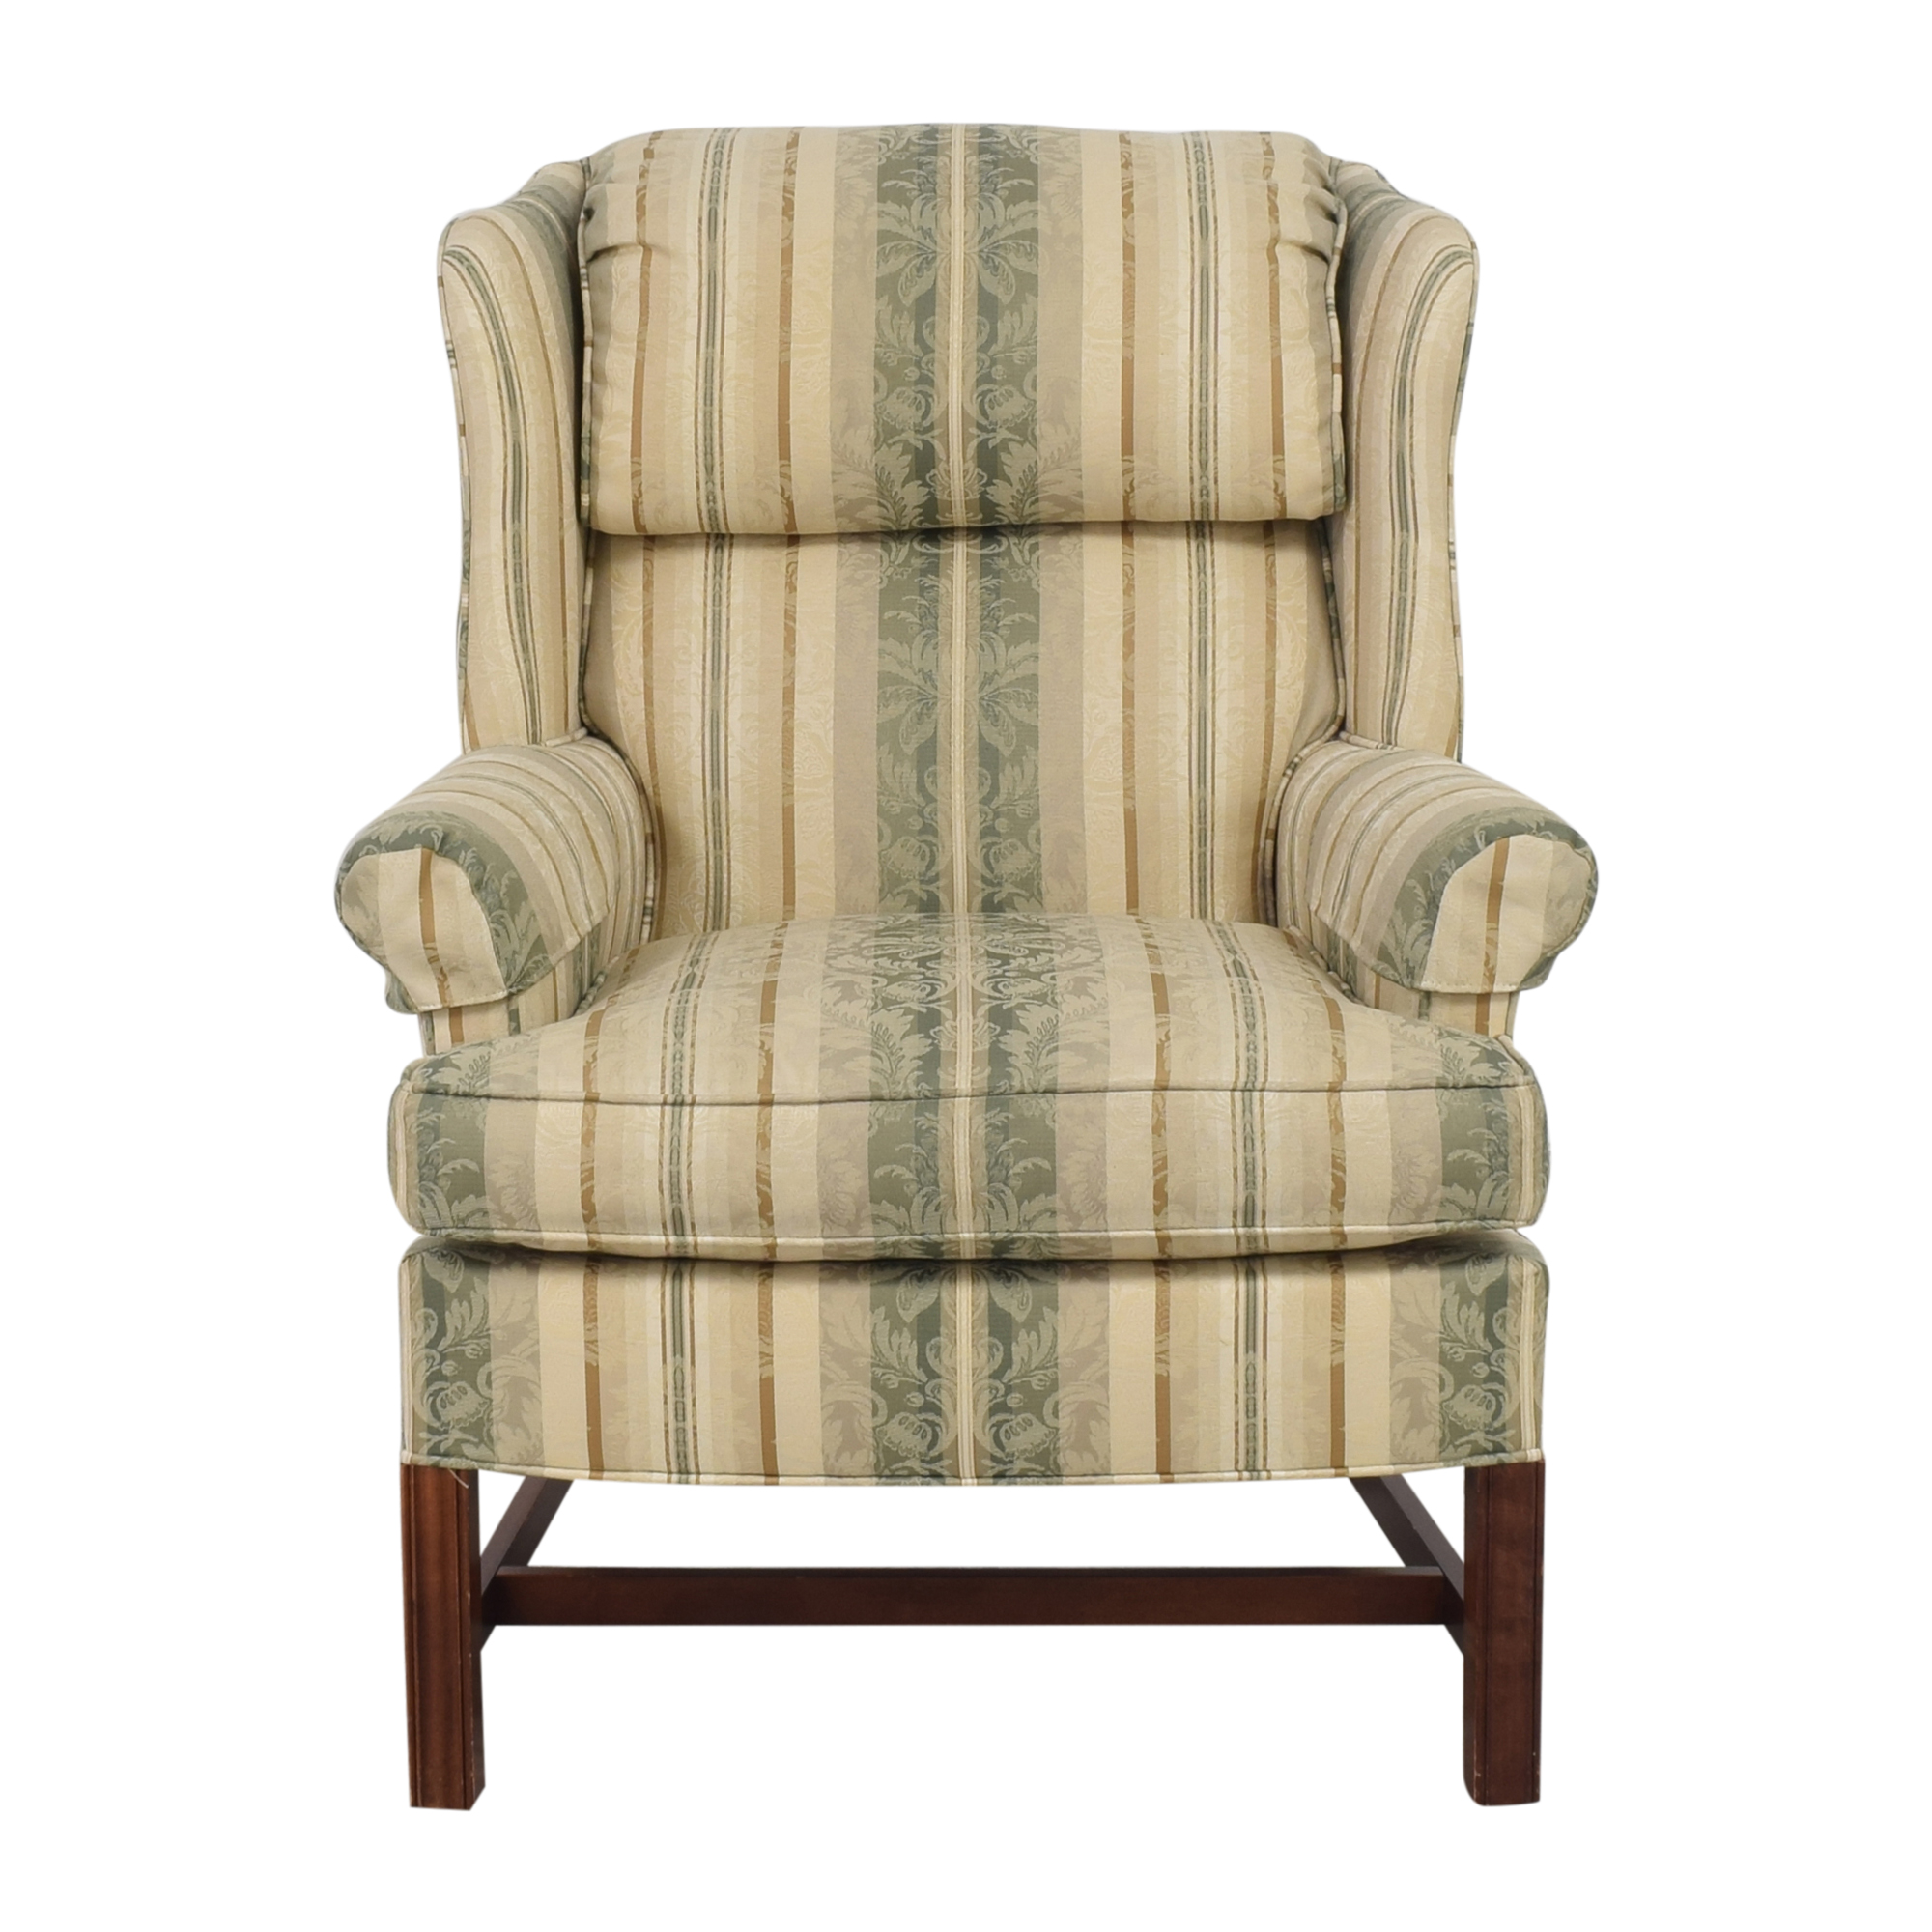 shop Woodmark Wing Back Accent Chair Woodmark Chairs